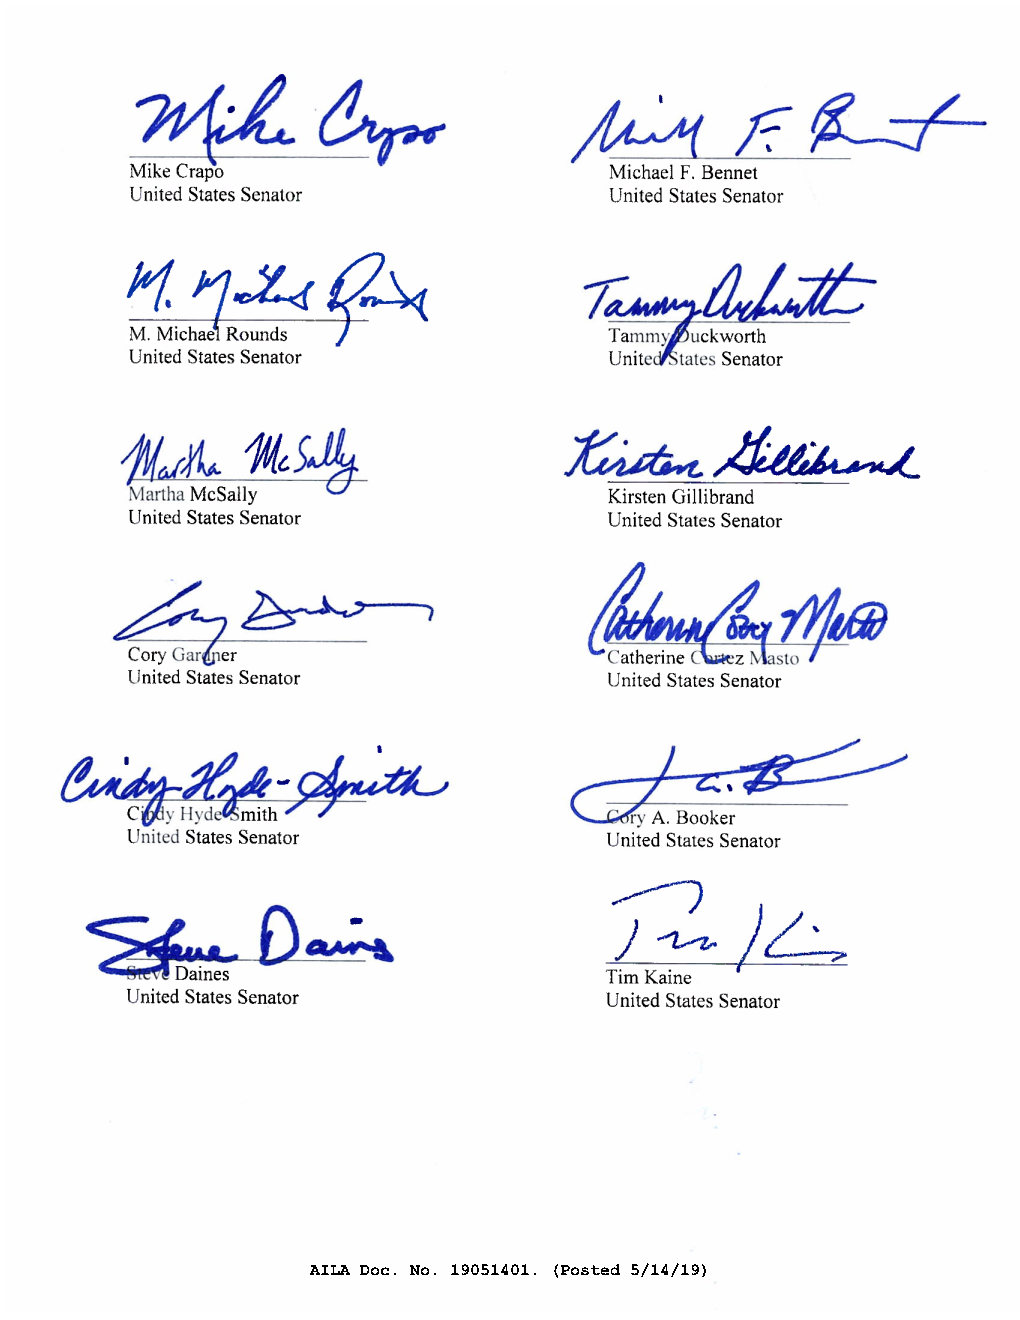 US-Senate-Letter-May-13-2019_Page4.jpg